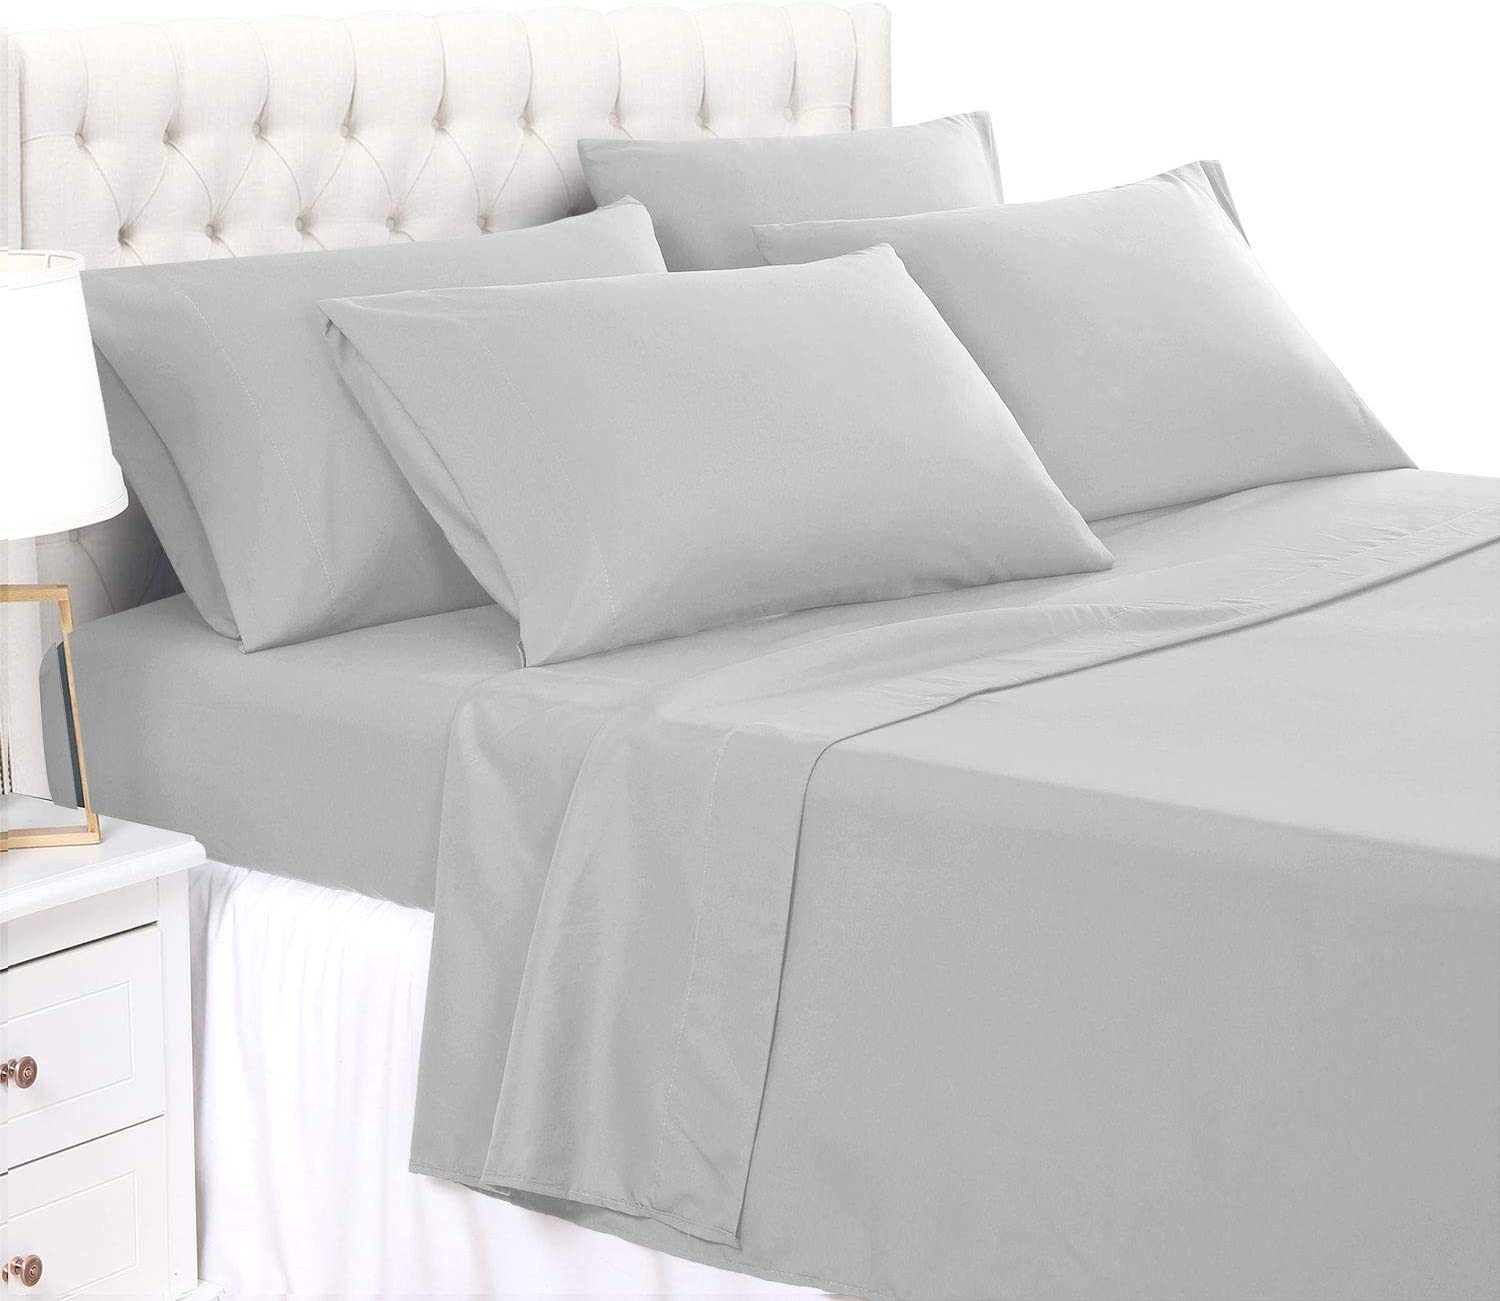 800 Thread Count 100% Cotton 4 Pcs Bed Sheets Light Grey, Full XL Sheets Long Staple Combed Cotton Fits Mattress Upto 21'' Deep Pocket Soft & Silky Sateen Weave, Luxury Bedding